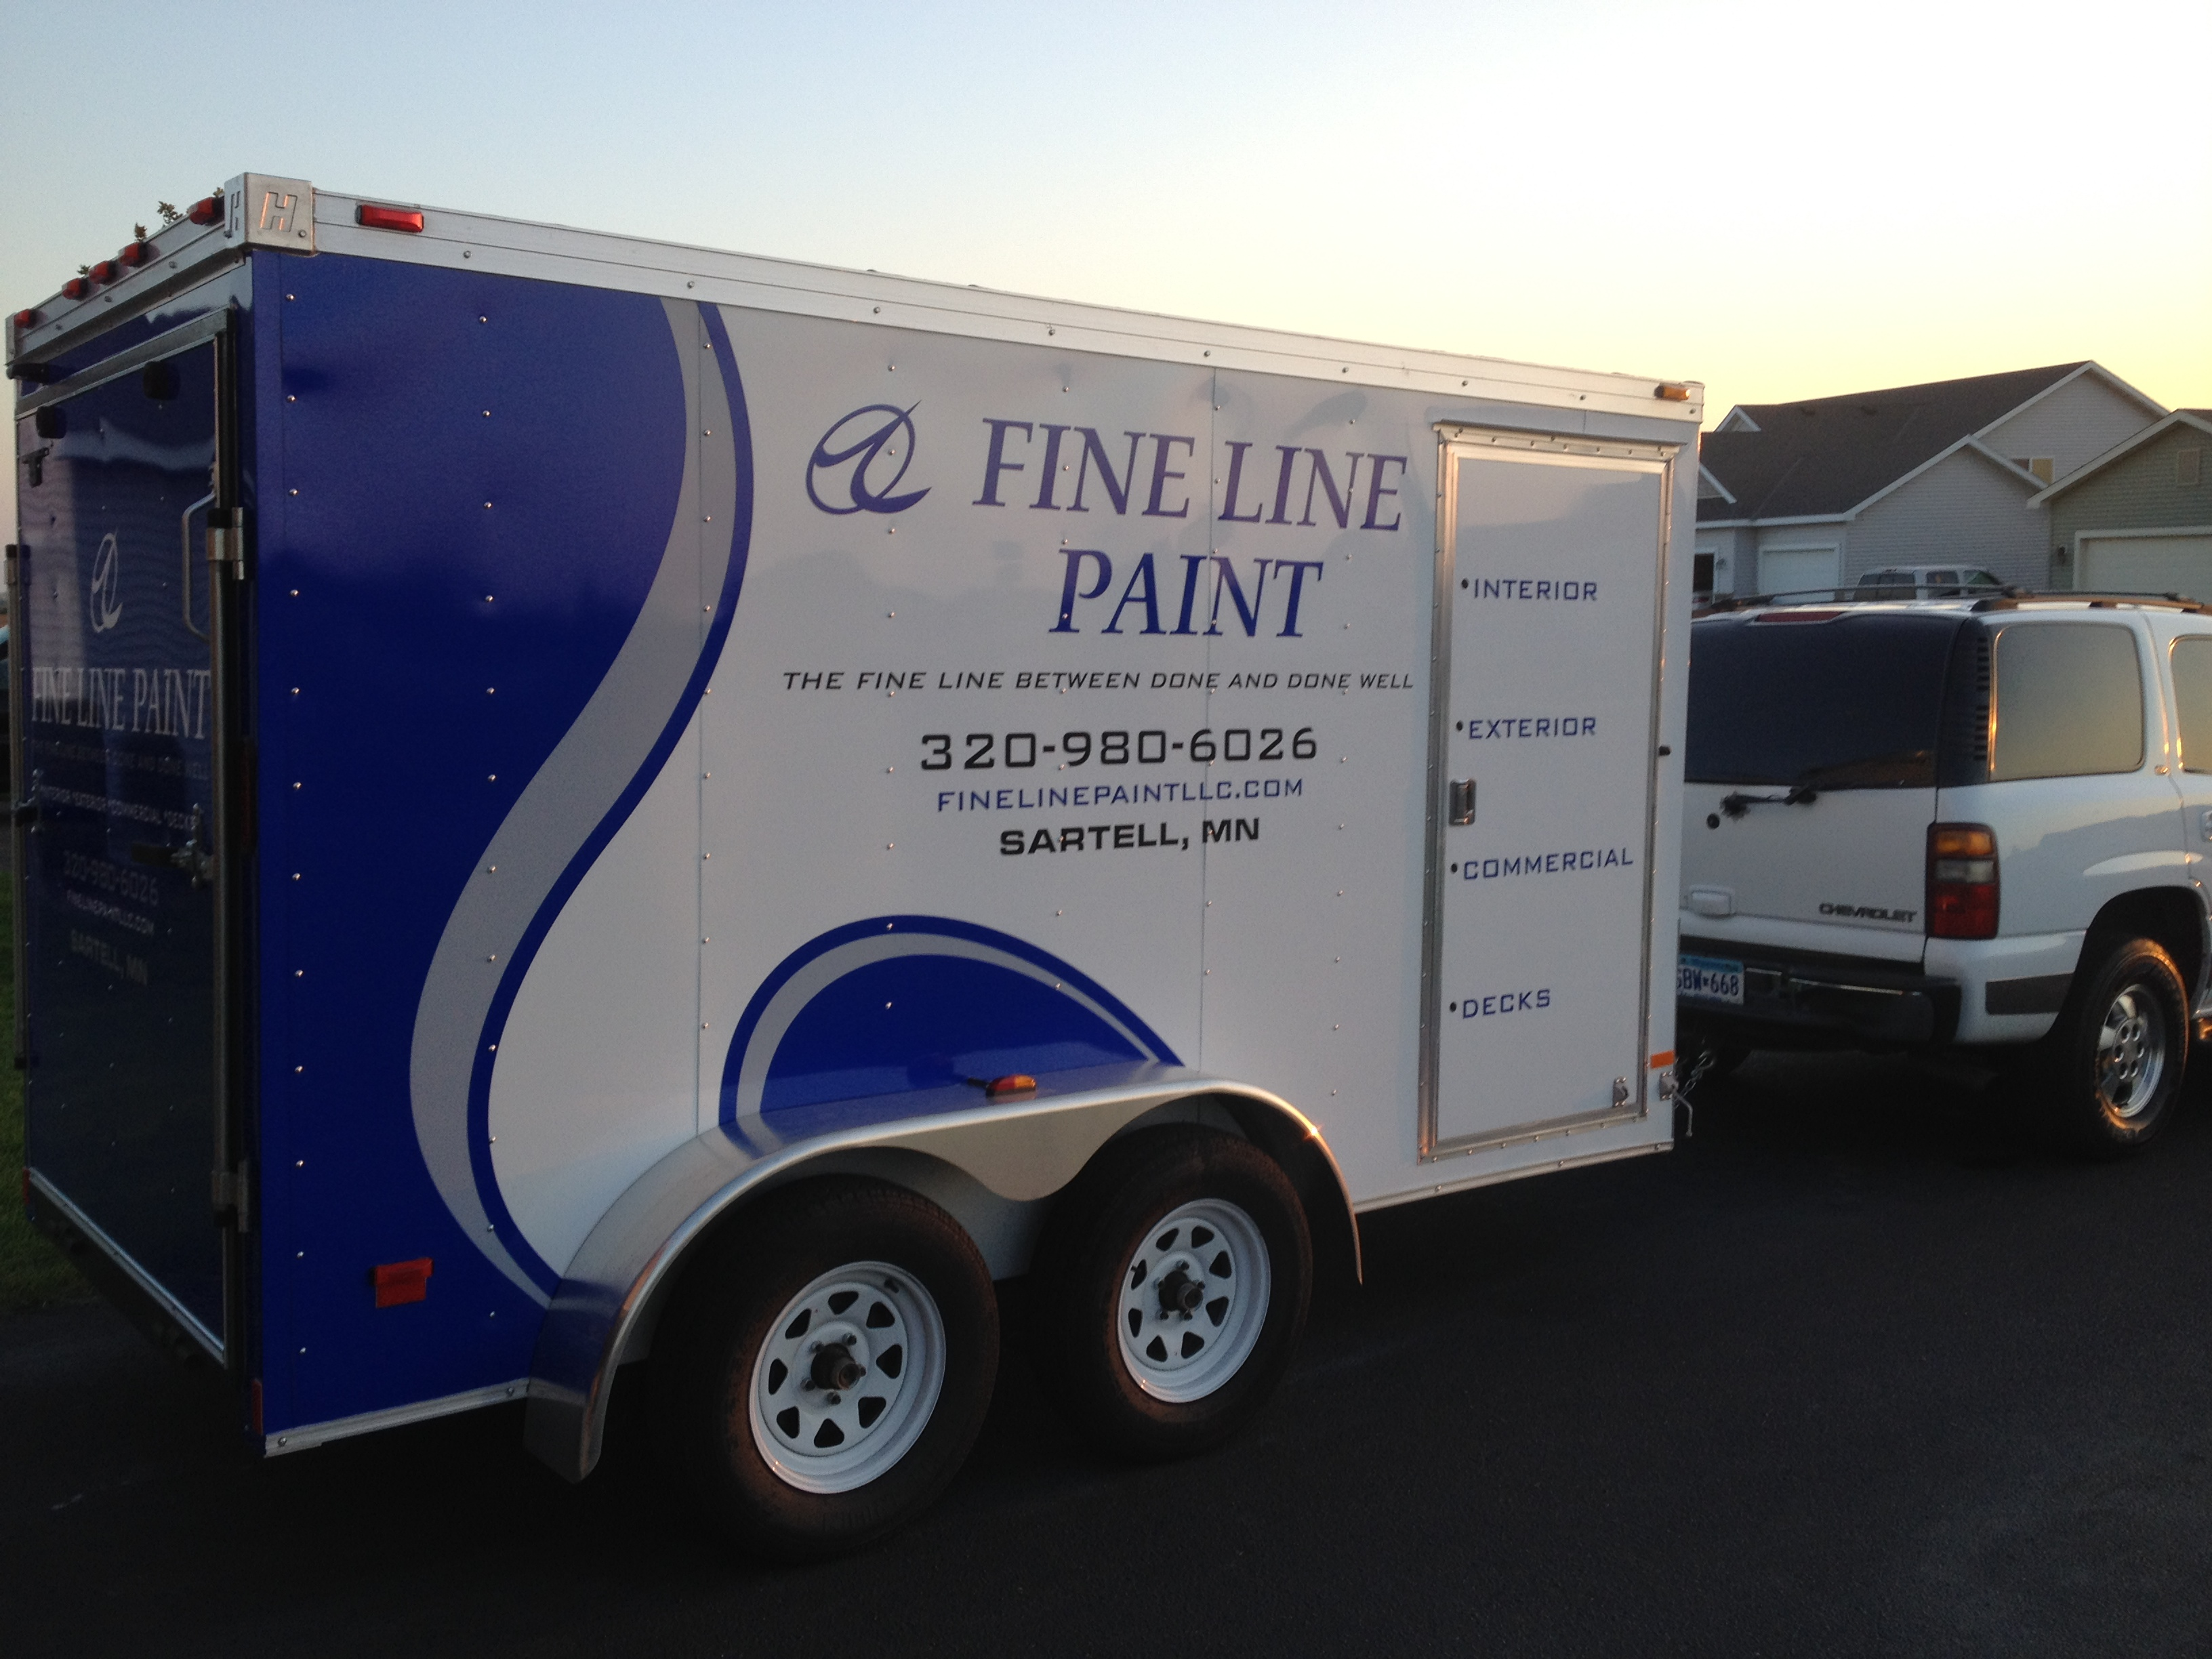 The Fine Line Paint Trailer